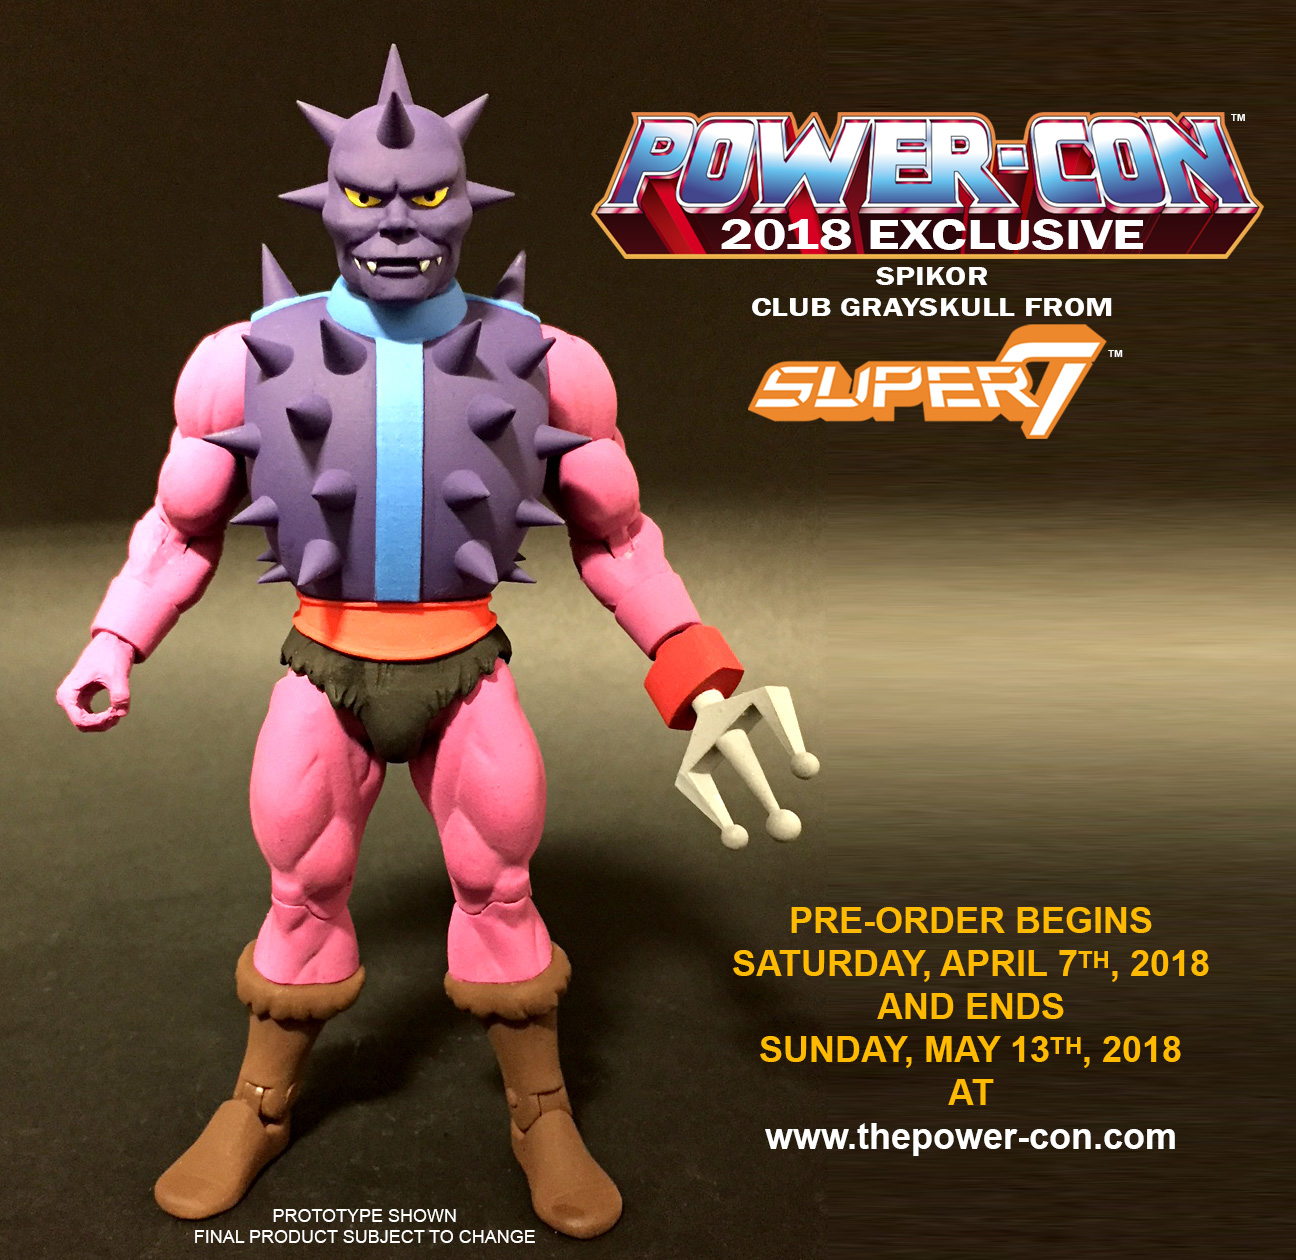 Power-Con 2018 Exclusive Masters Of The Universe Club Grayskull Spikor Figure